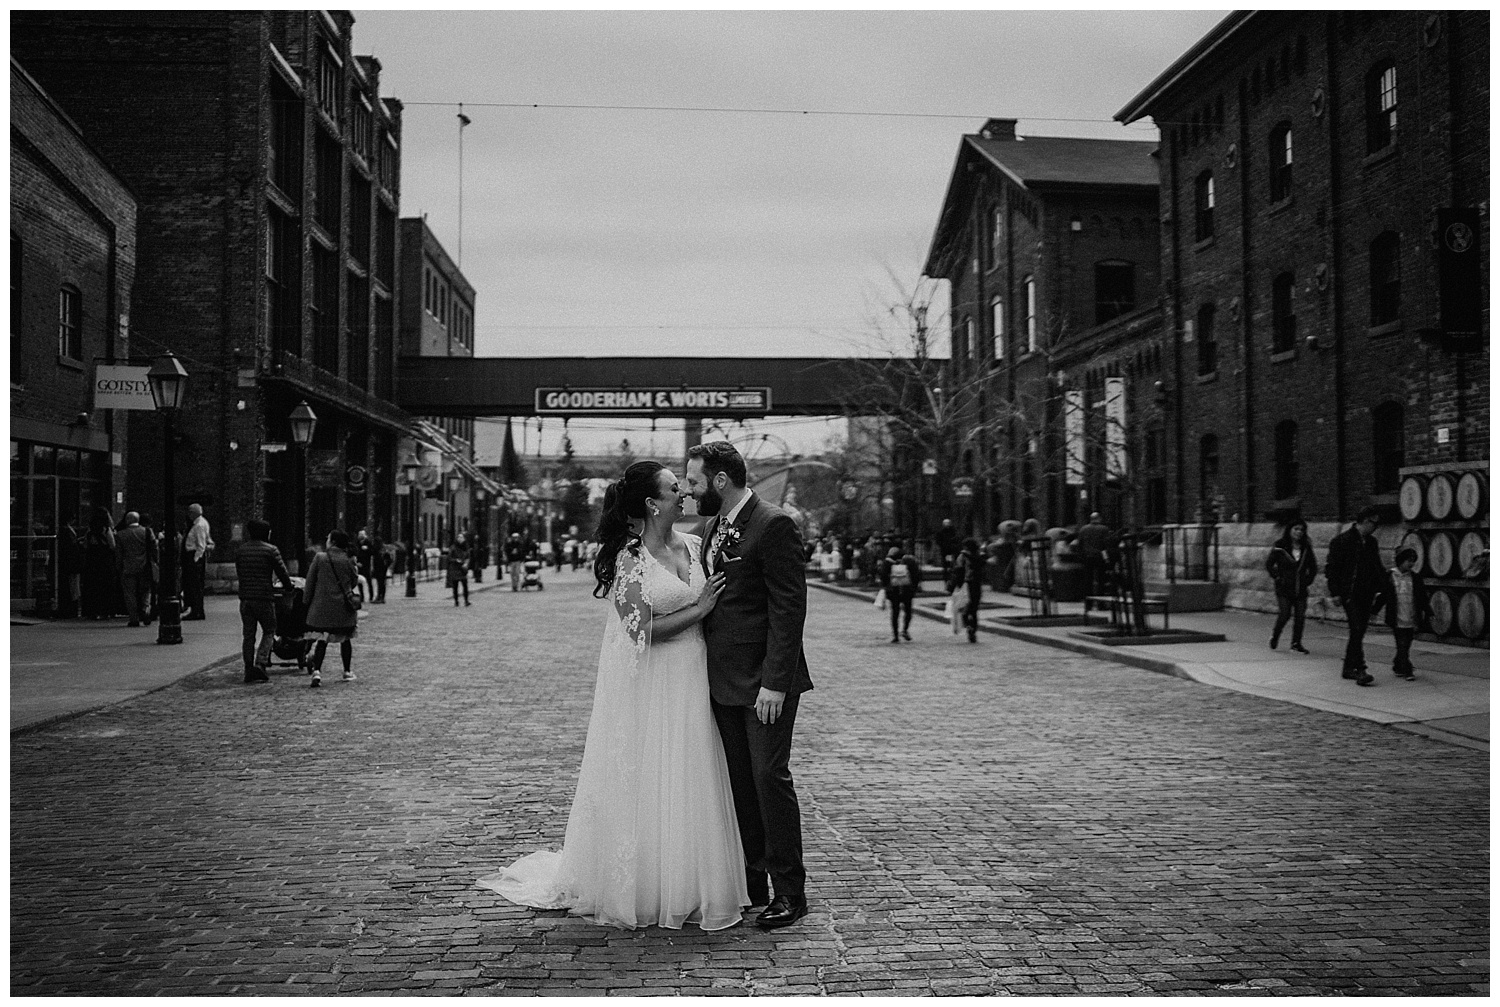 Katie Marie Photography | Archeo Wedding Arta Gallery Wedding | Distillery District Wedding | Toronto Wedding Photographer | Hamilton Toronto Ontario Wedding Photographer |_0055.jpg